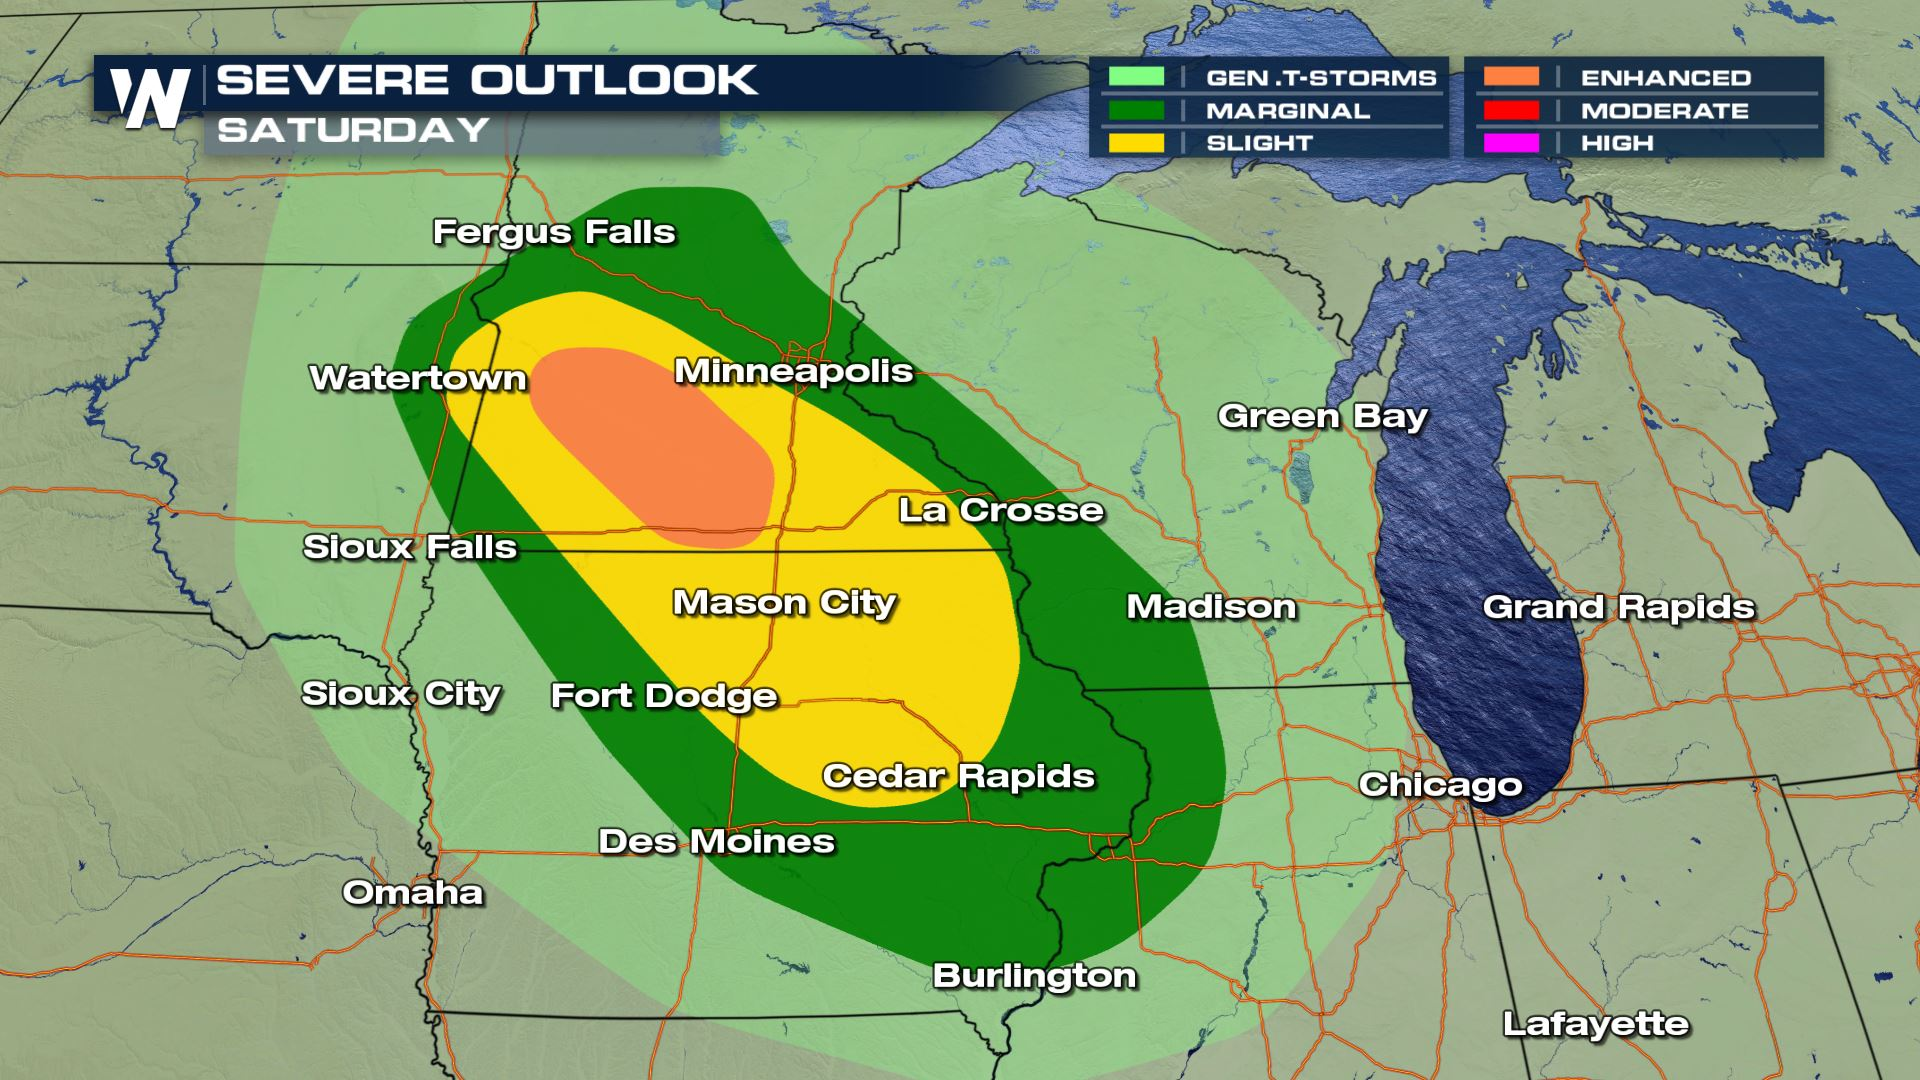 Labor Day Weekend Severe Storms Possible in the Upper Midwest